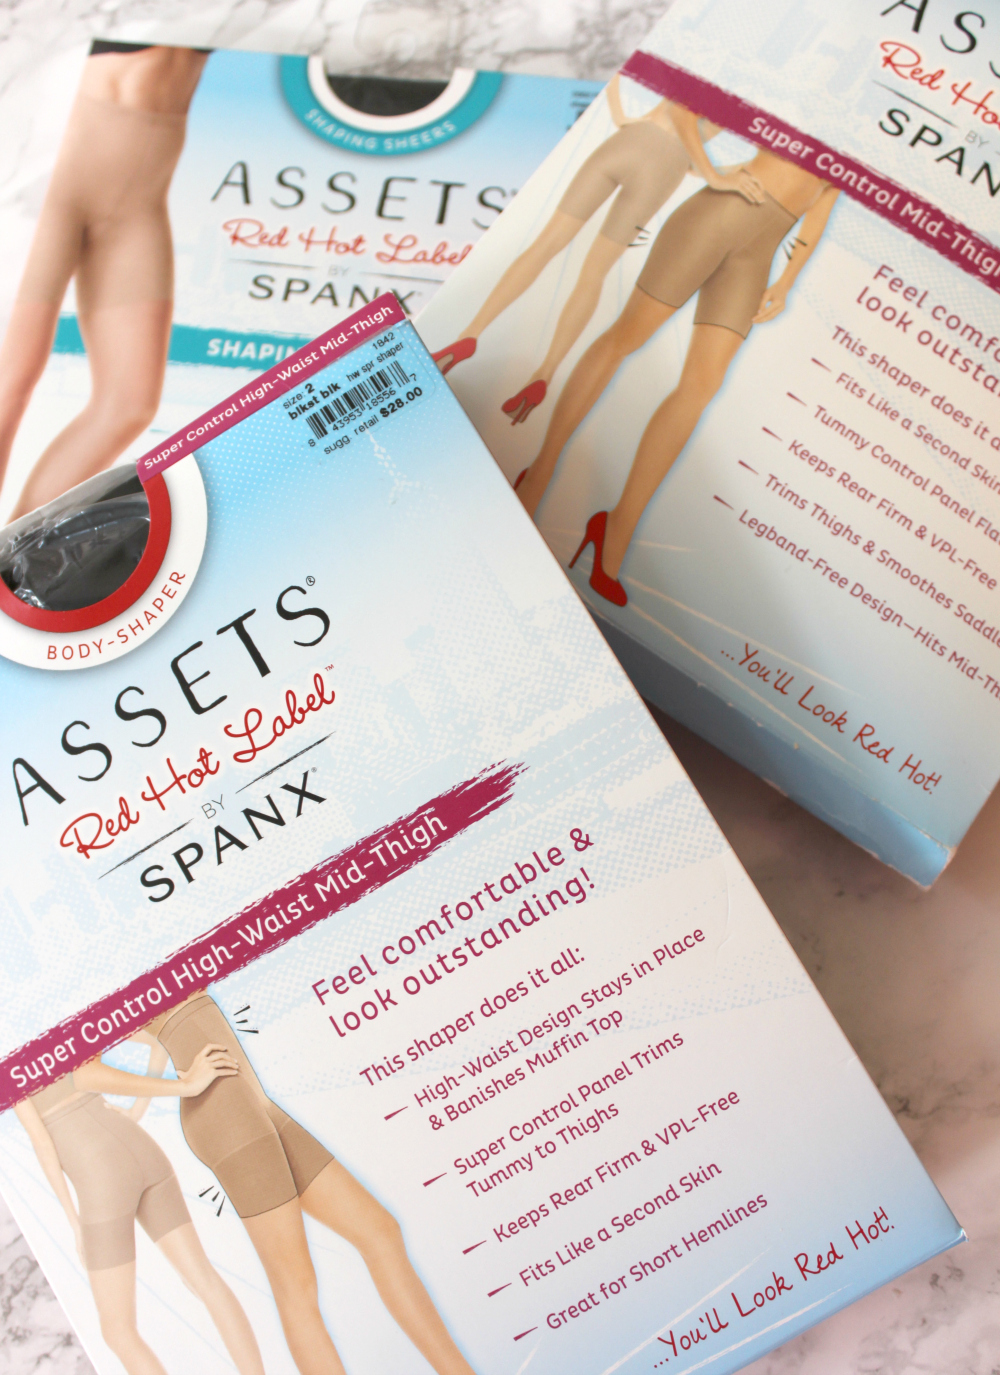 Kohl's Perfect Pair, Intimate Apparel, Rules of Intimate Apparel, Assets by Spanx, Spanx, Cheap Shapewear, Stephanie Ziajka, Diary of a Debutante